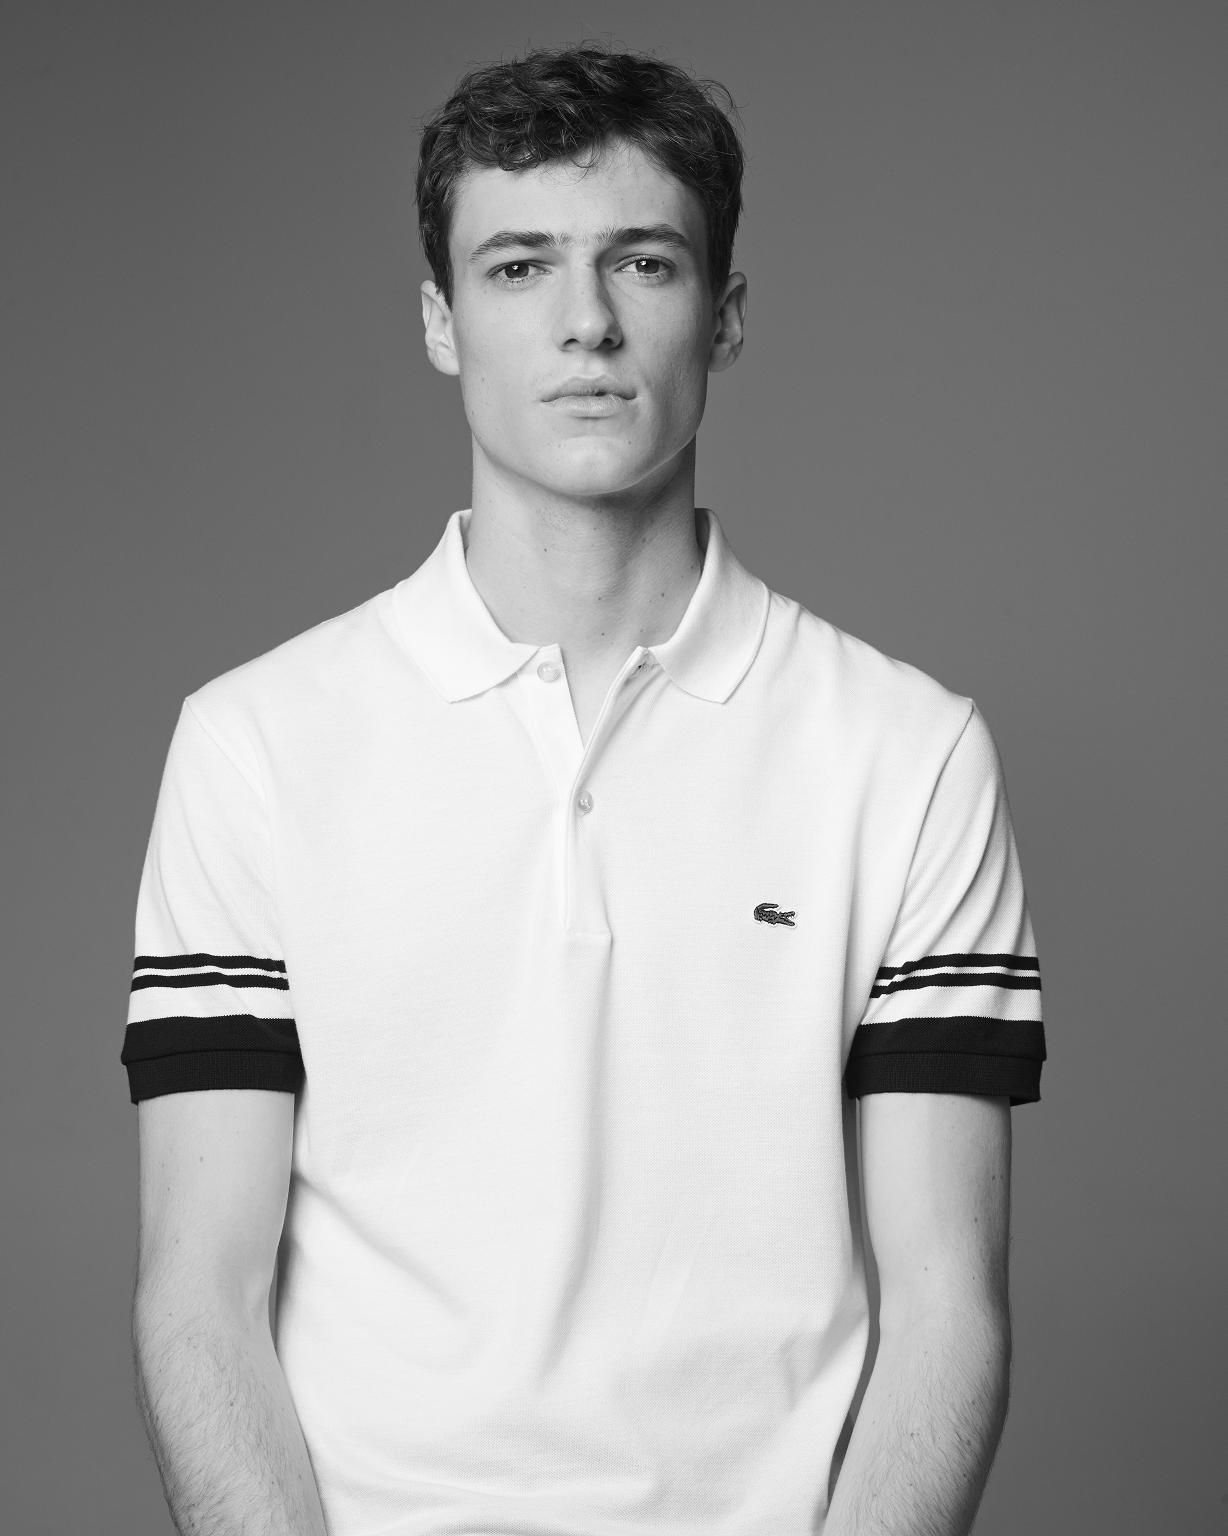 ce9c35cf1b The white and blue Slim Fit Polo with Striped Sleeves by Lacoste is ...